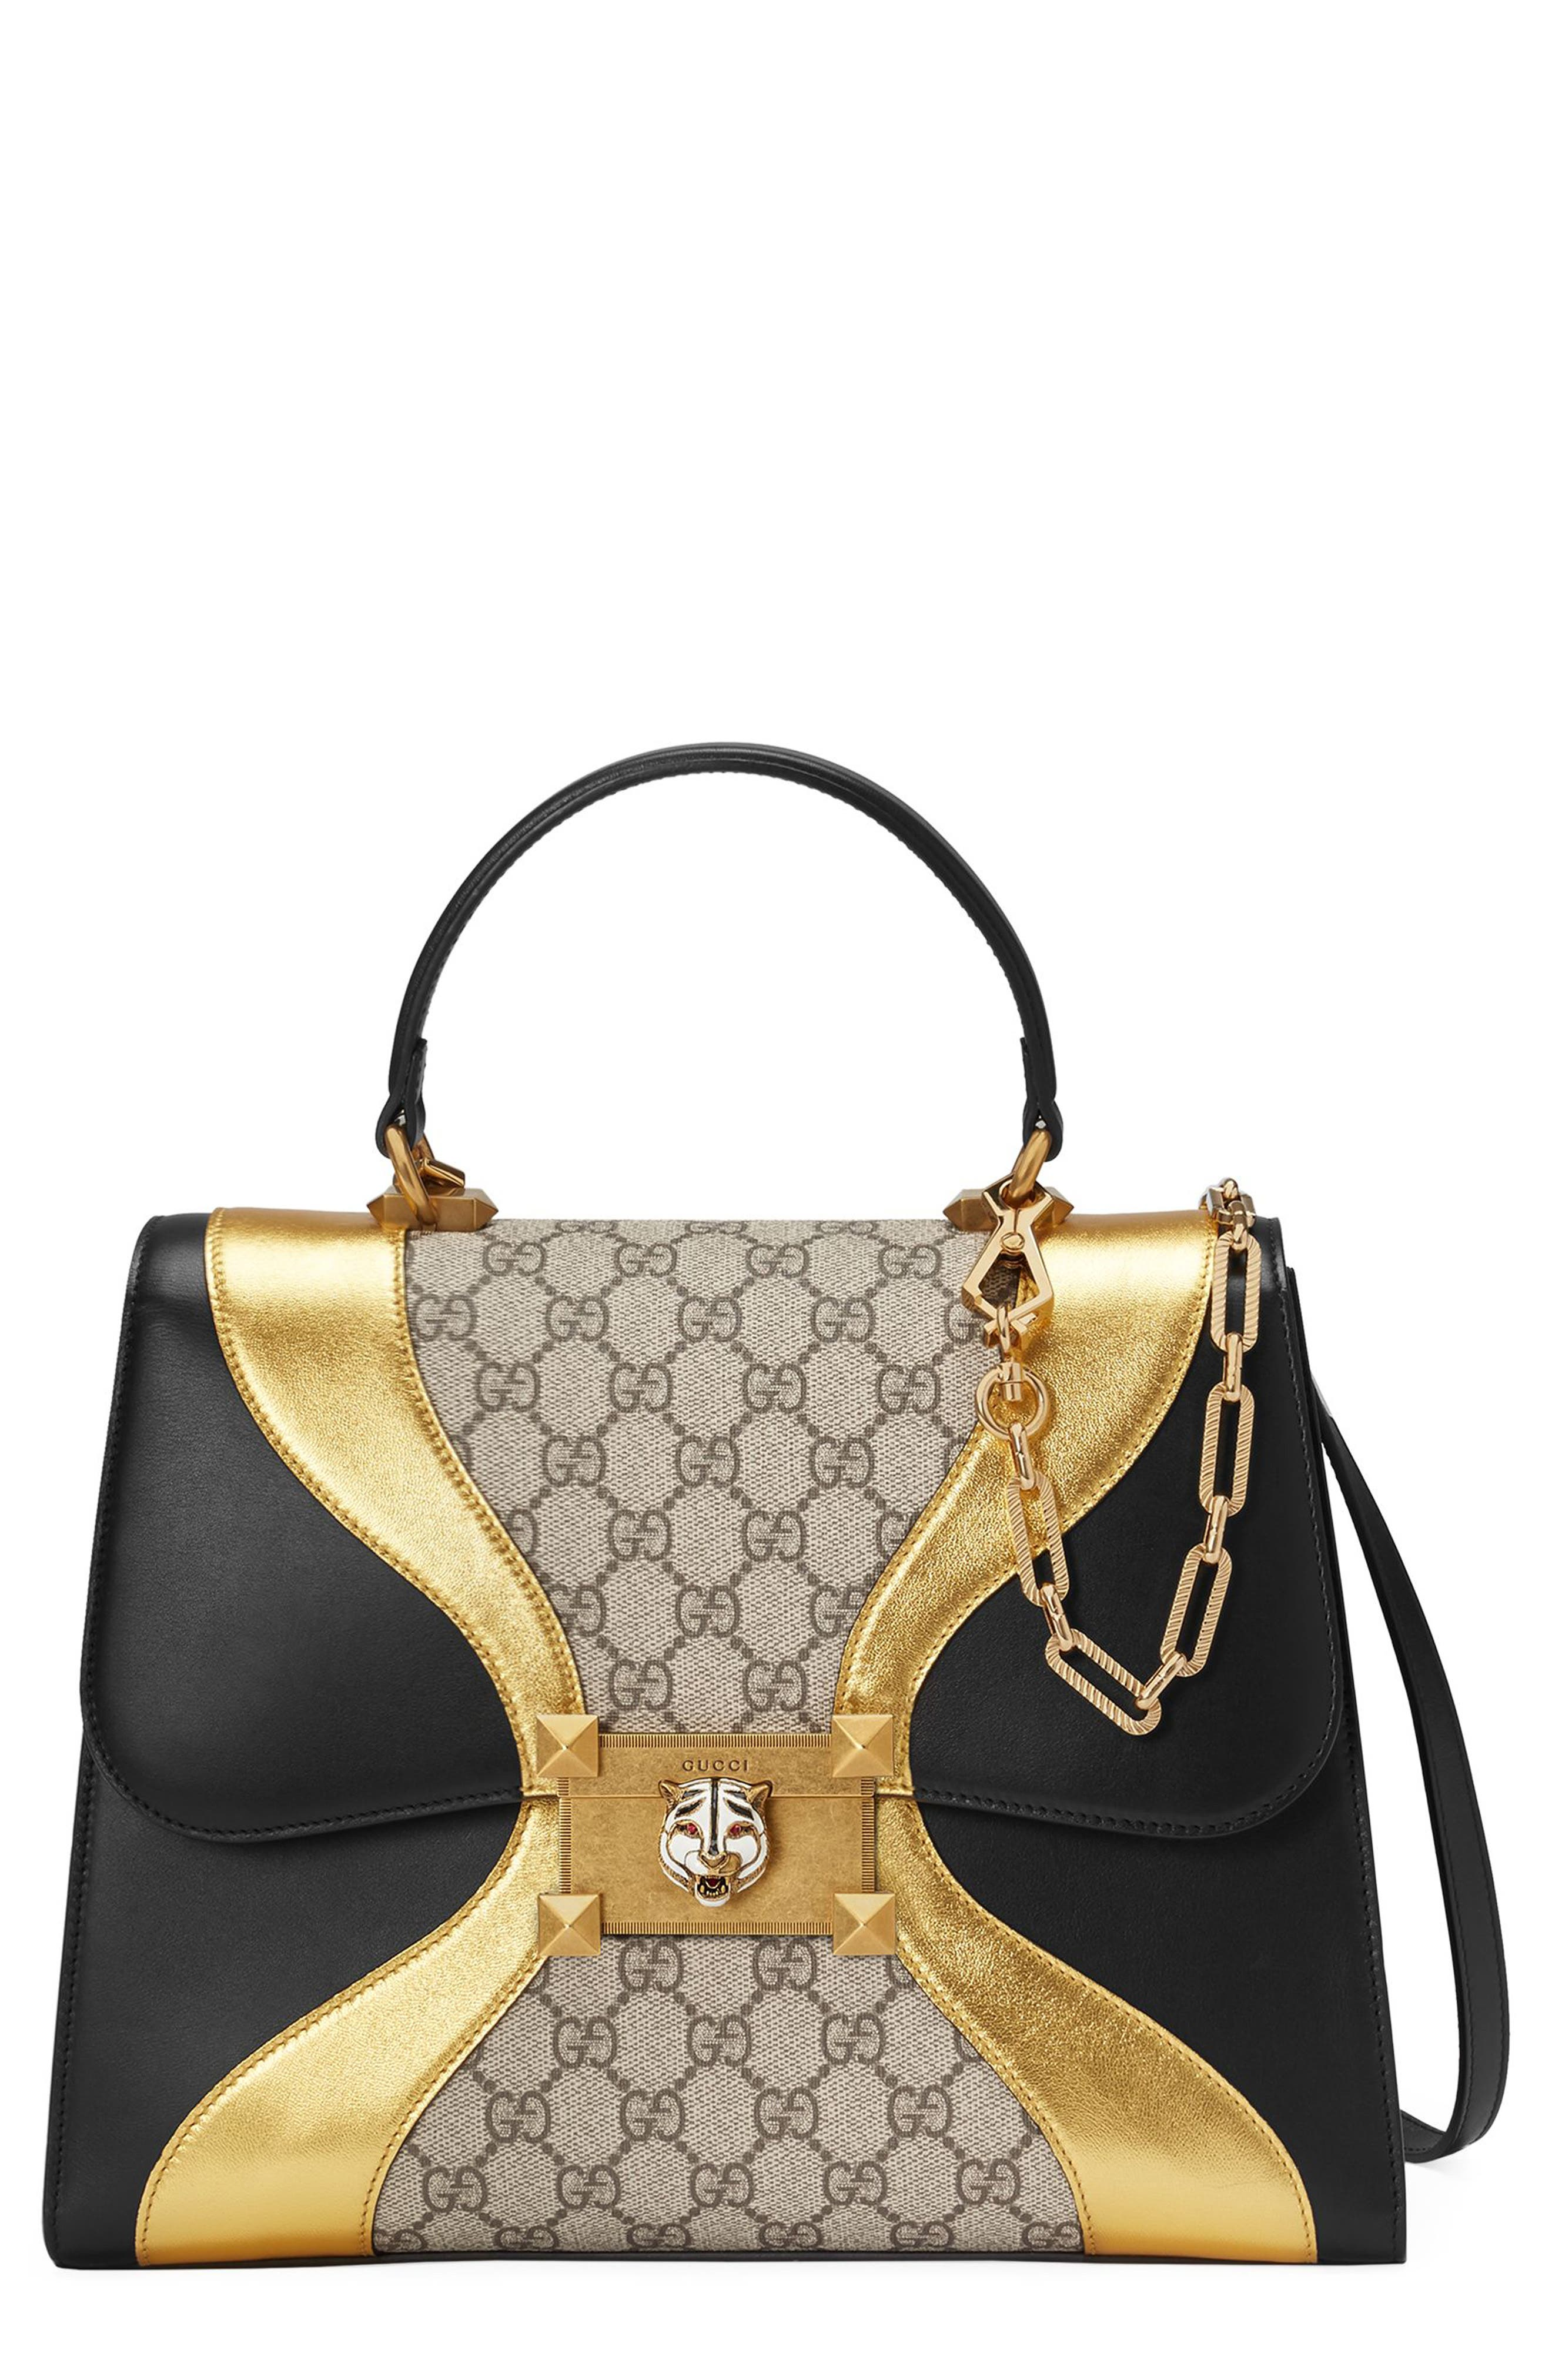 Gucci Iside Top Handle GG Supreme & Leather Satchel